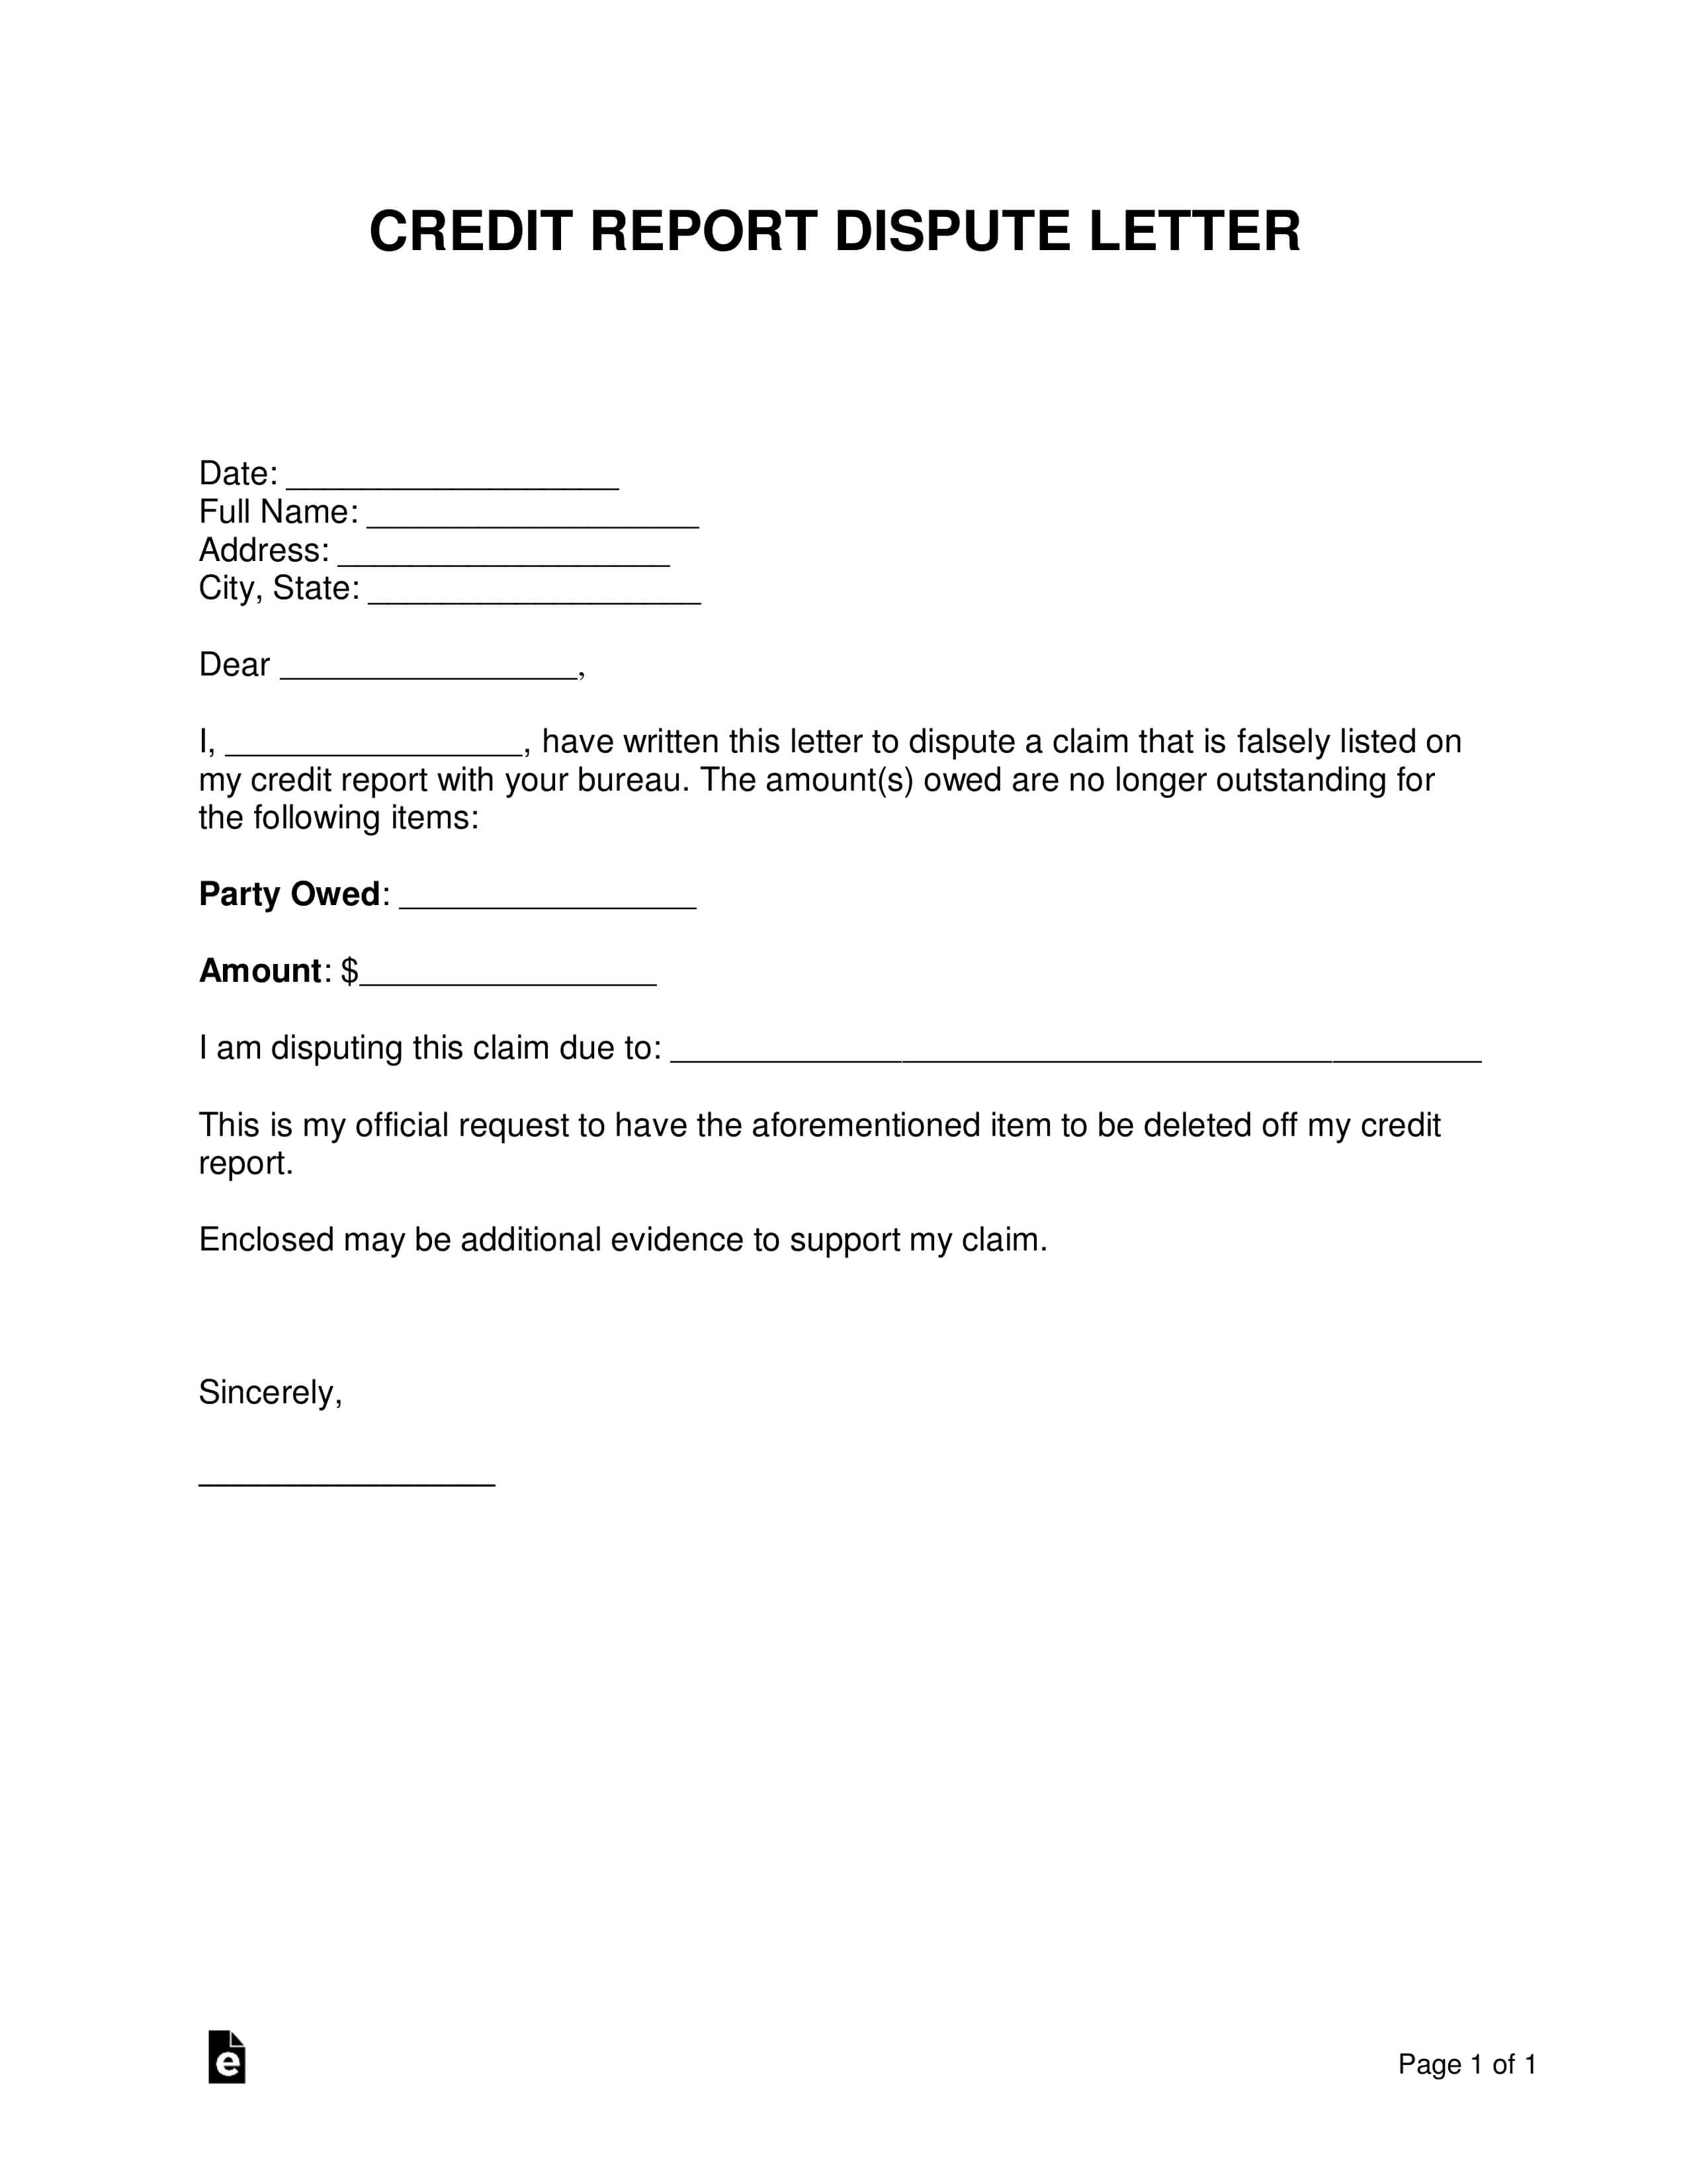 Free Credit Report Dispute Letter Template - Sample - Word In Credit Report Dispute Letter Template